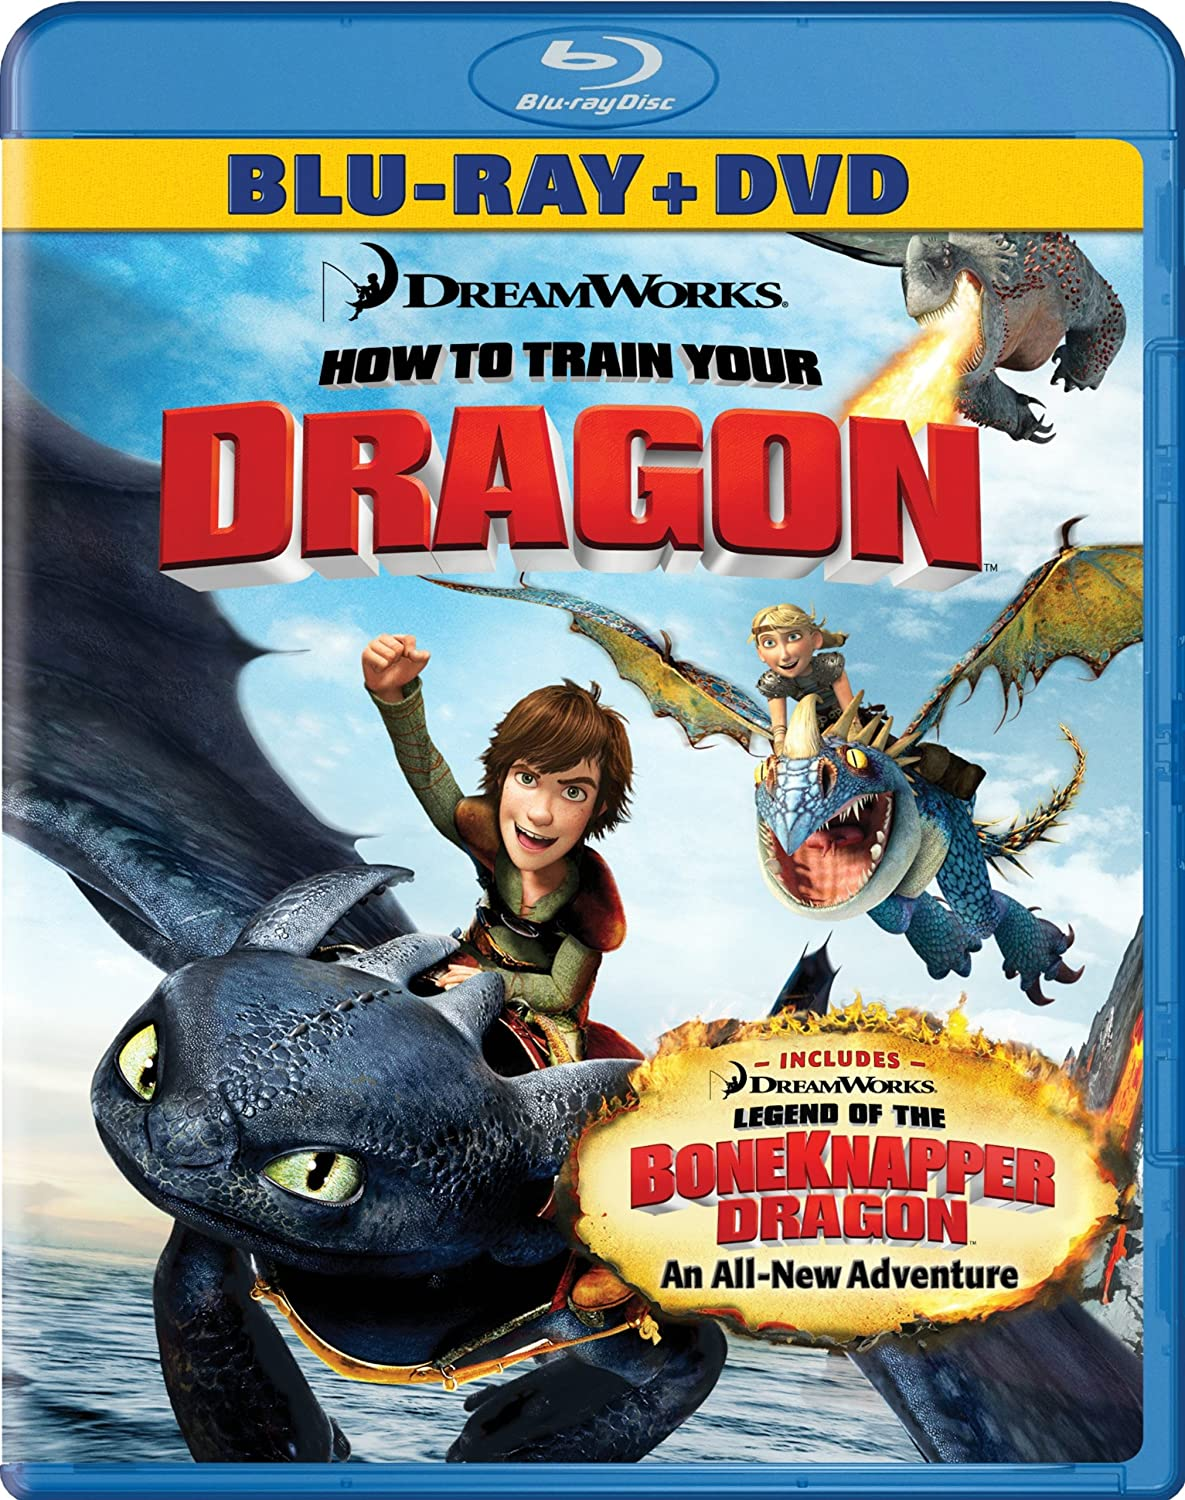 Amazon how to train your dragon two disc blu raydvd combo amazon how to train your dragon two disc blu raydvd combo jay baruchel gerard butler craig ferguson america ferrera jonah hill ccuart Image collections